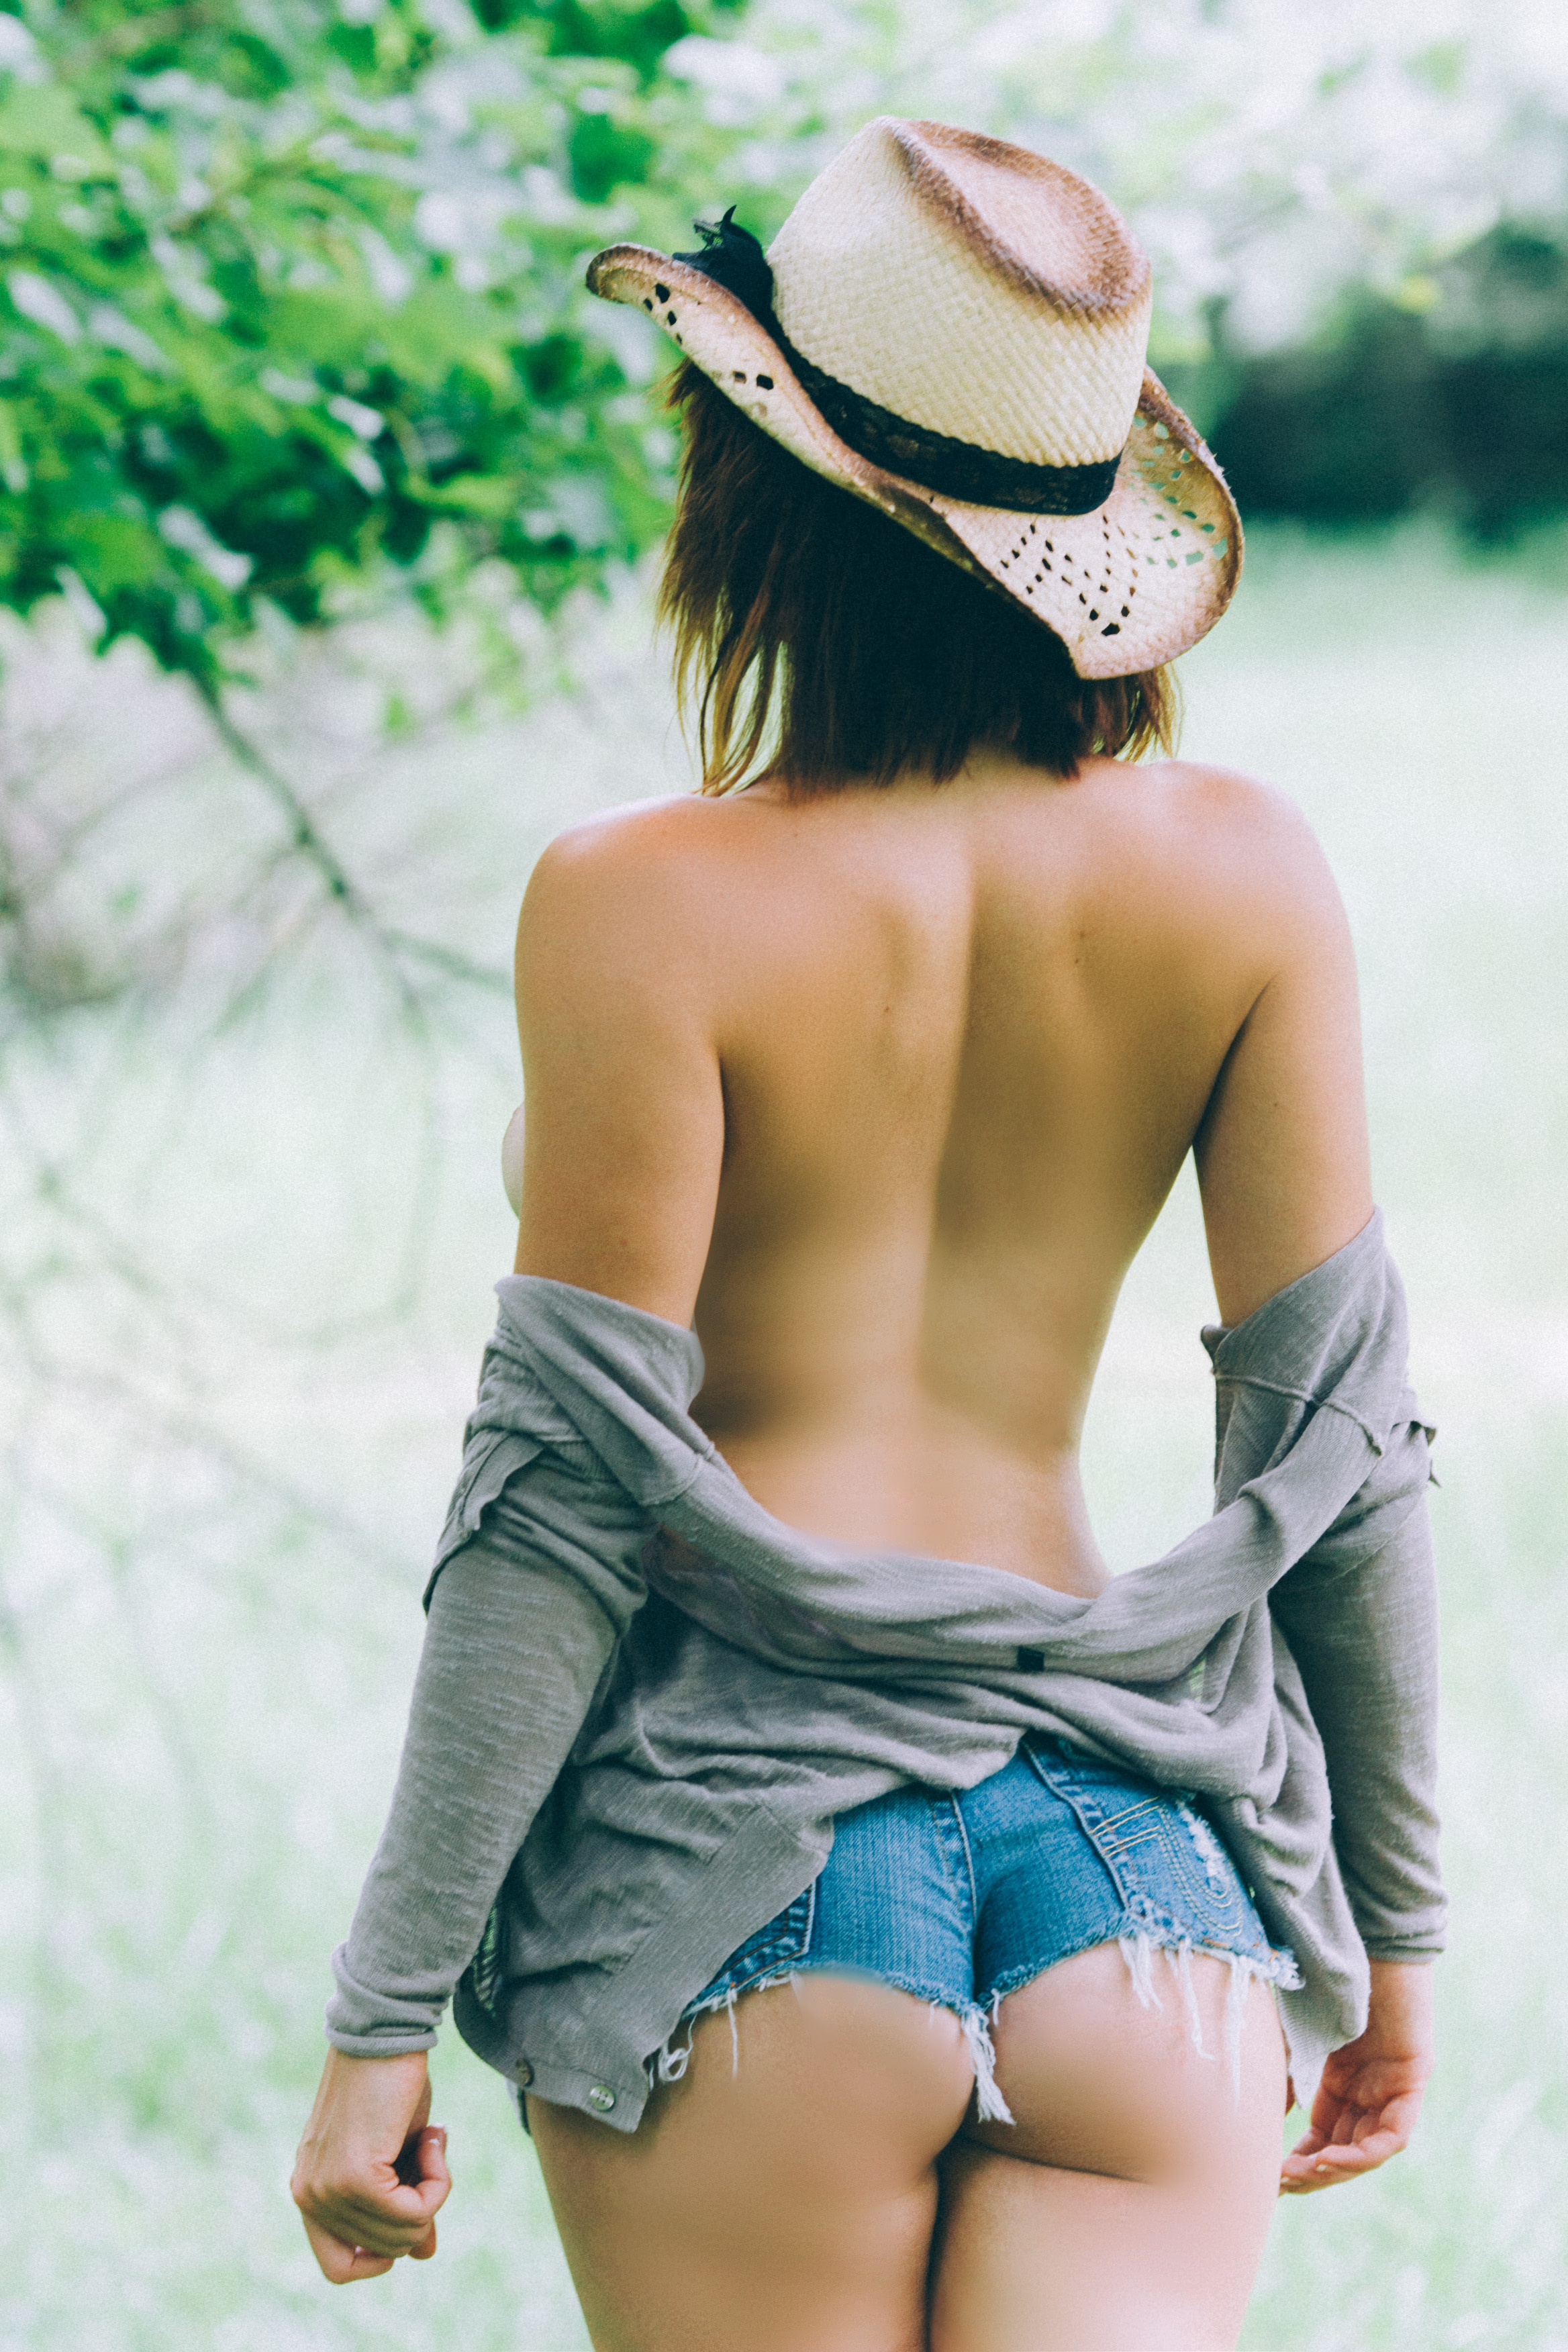 cowgirl implied